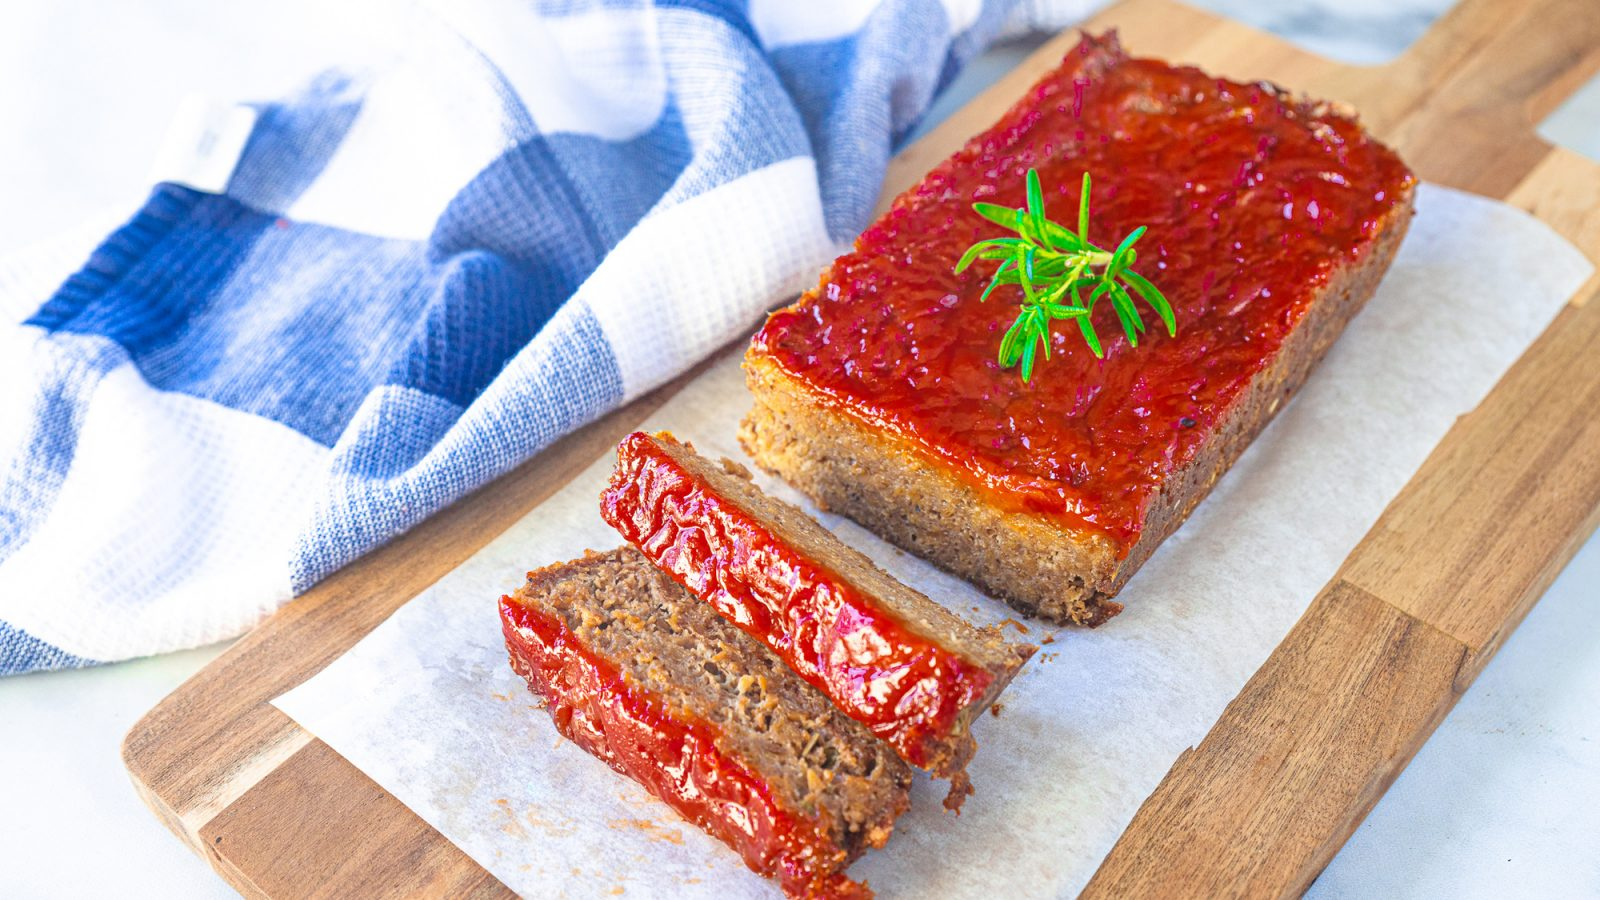 vegan meatloaf on serving tray